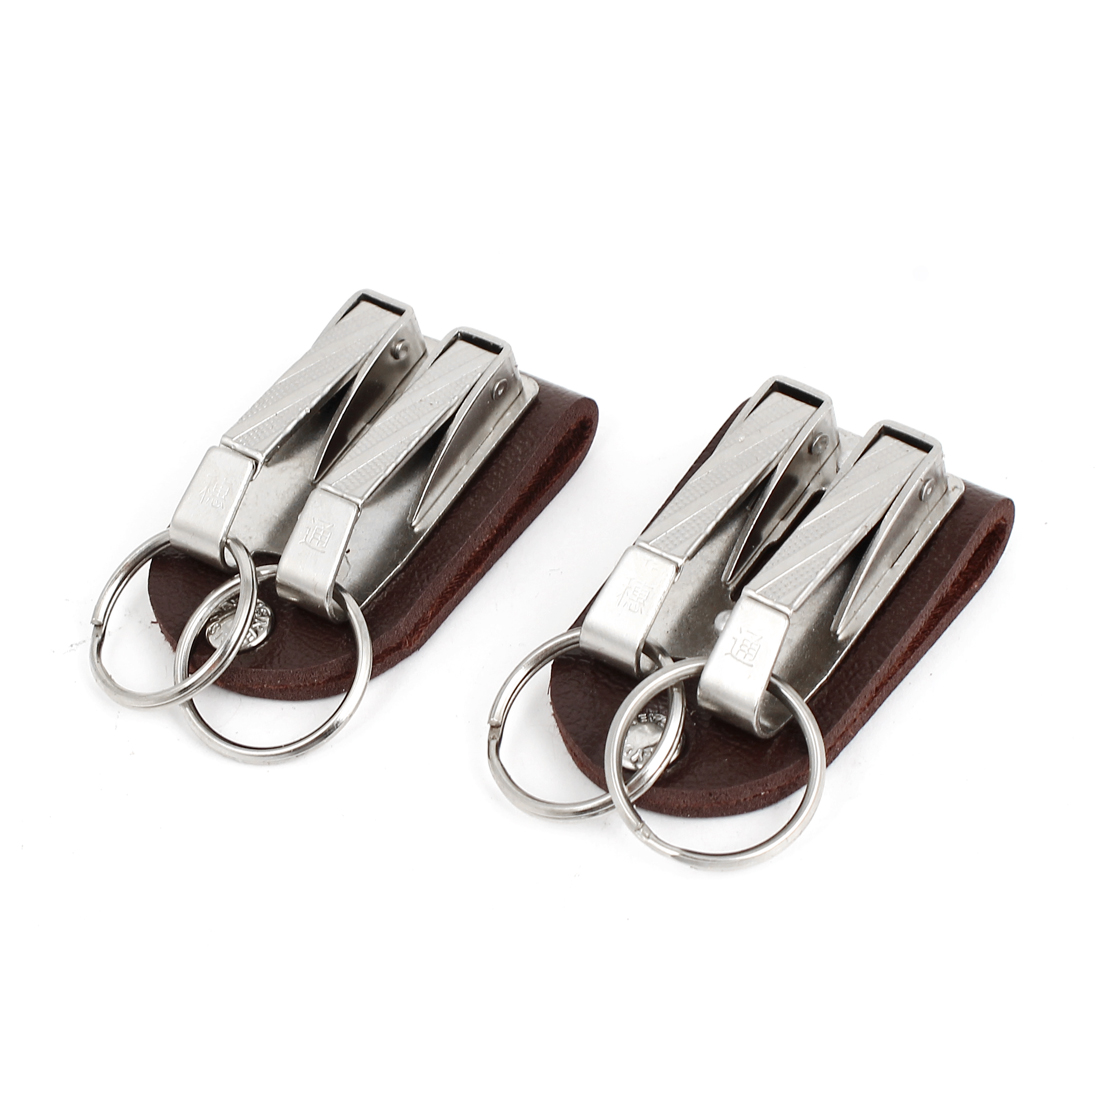 Brown Faux Leather Belt Loop Dual Clasp Split Ring Keychain Key Holder 2Pcs